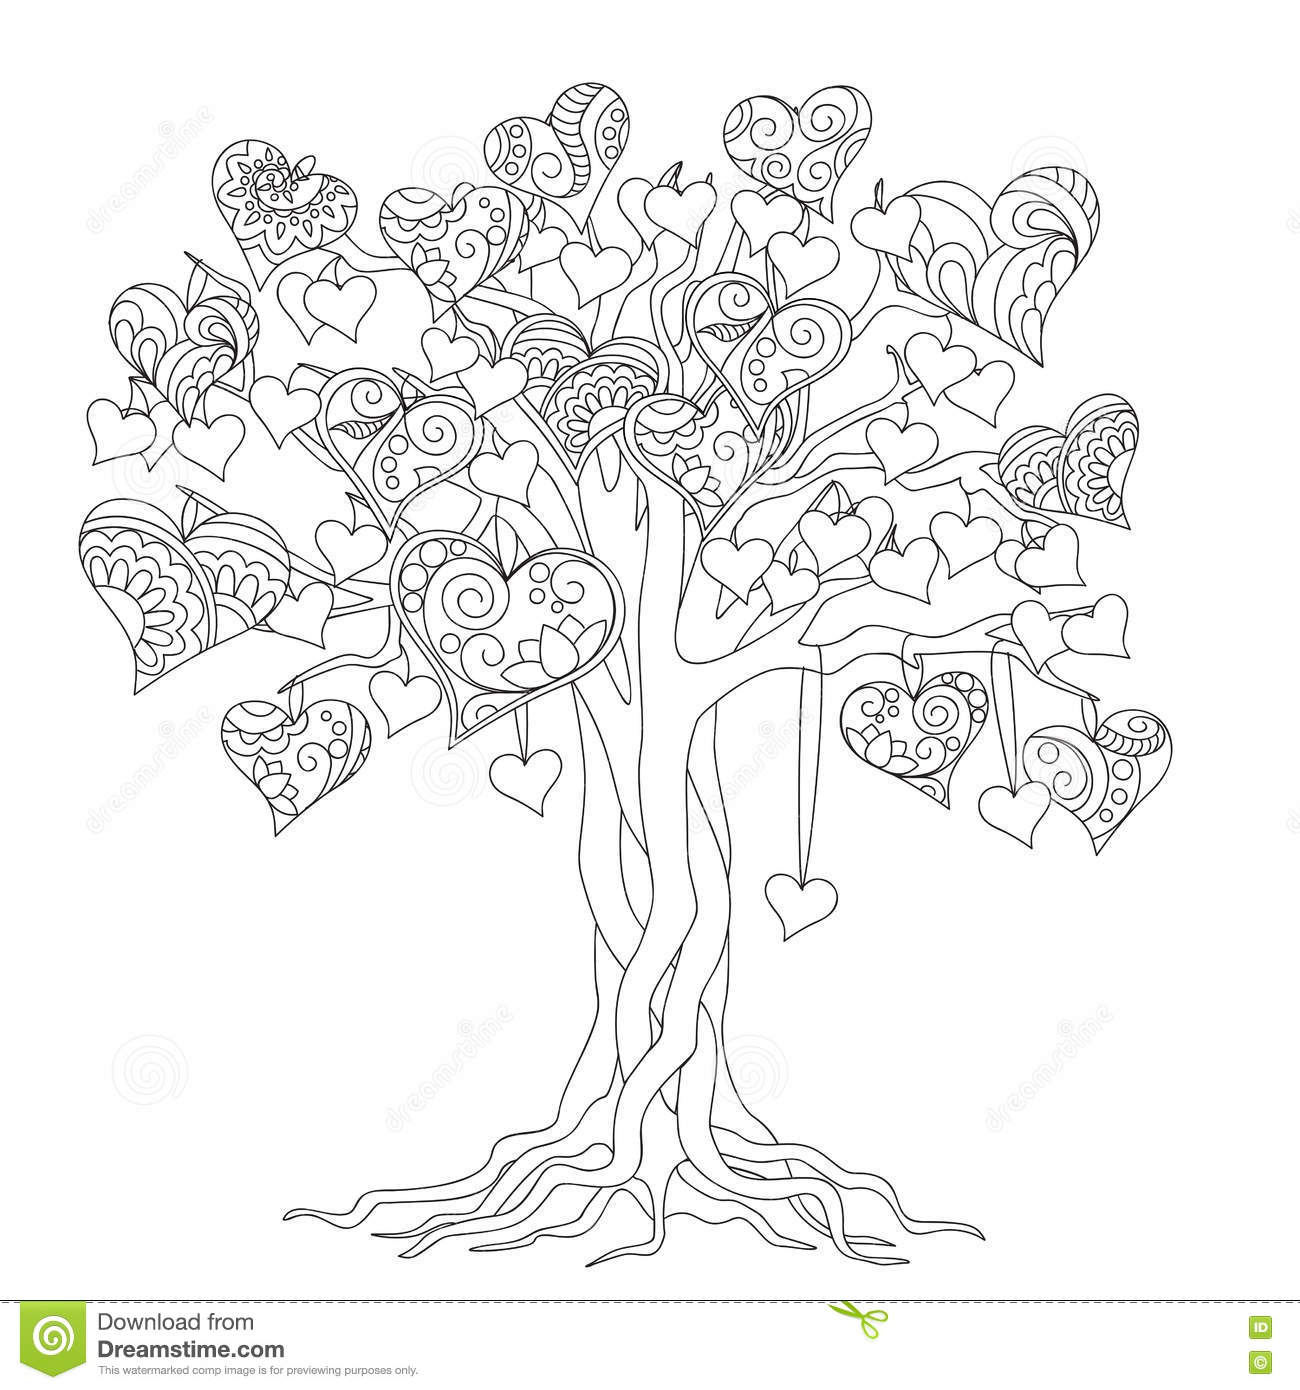 Coloriage Arbre Anti Stress.Arbre De Zen De L Amour Illustration De Vecteur Illustration Du